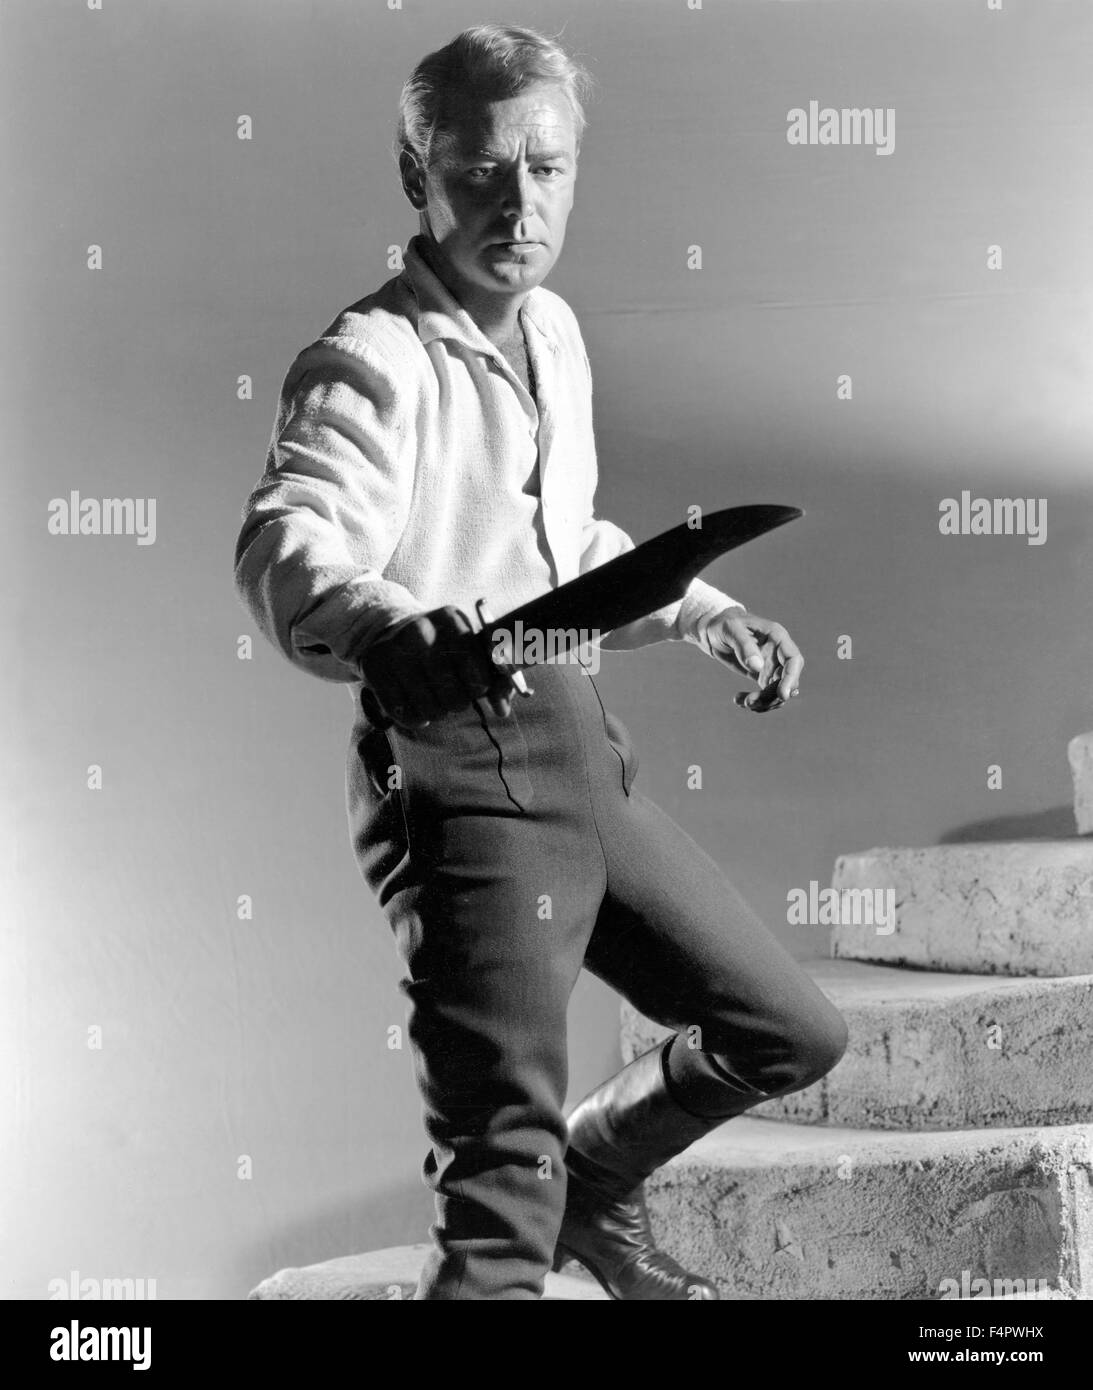 Alan Ladd / The Iron Mistress / 1952 directed by Gordon Douglas [Warner Bros. Pictures] - Stock Image